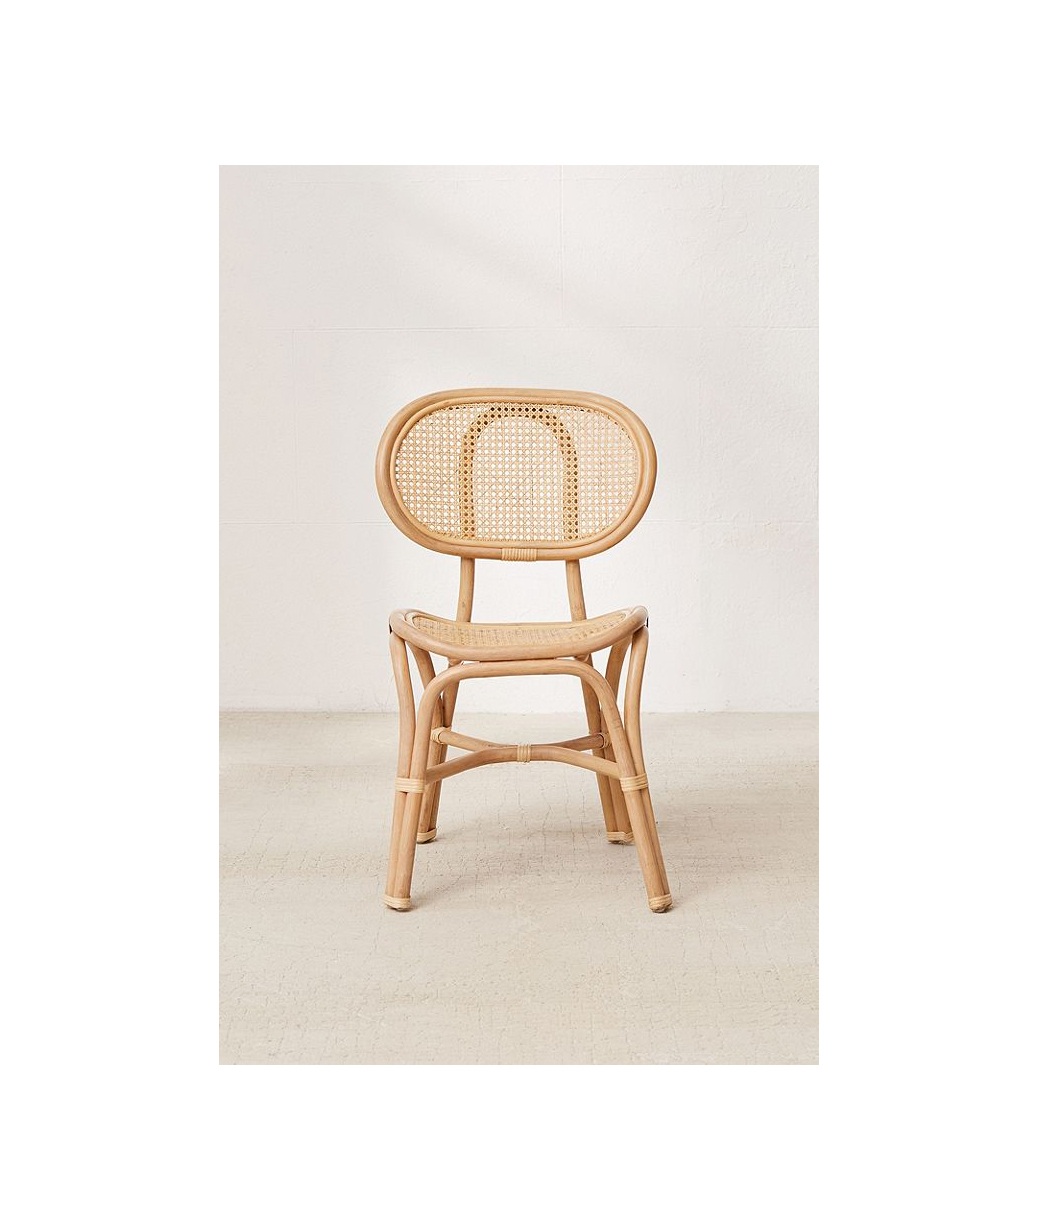 Home Office Furniture Must-Haves: Marte Bistro Chair